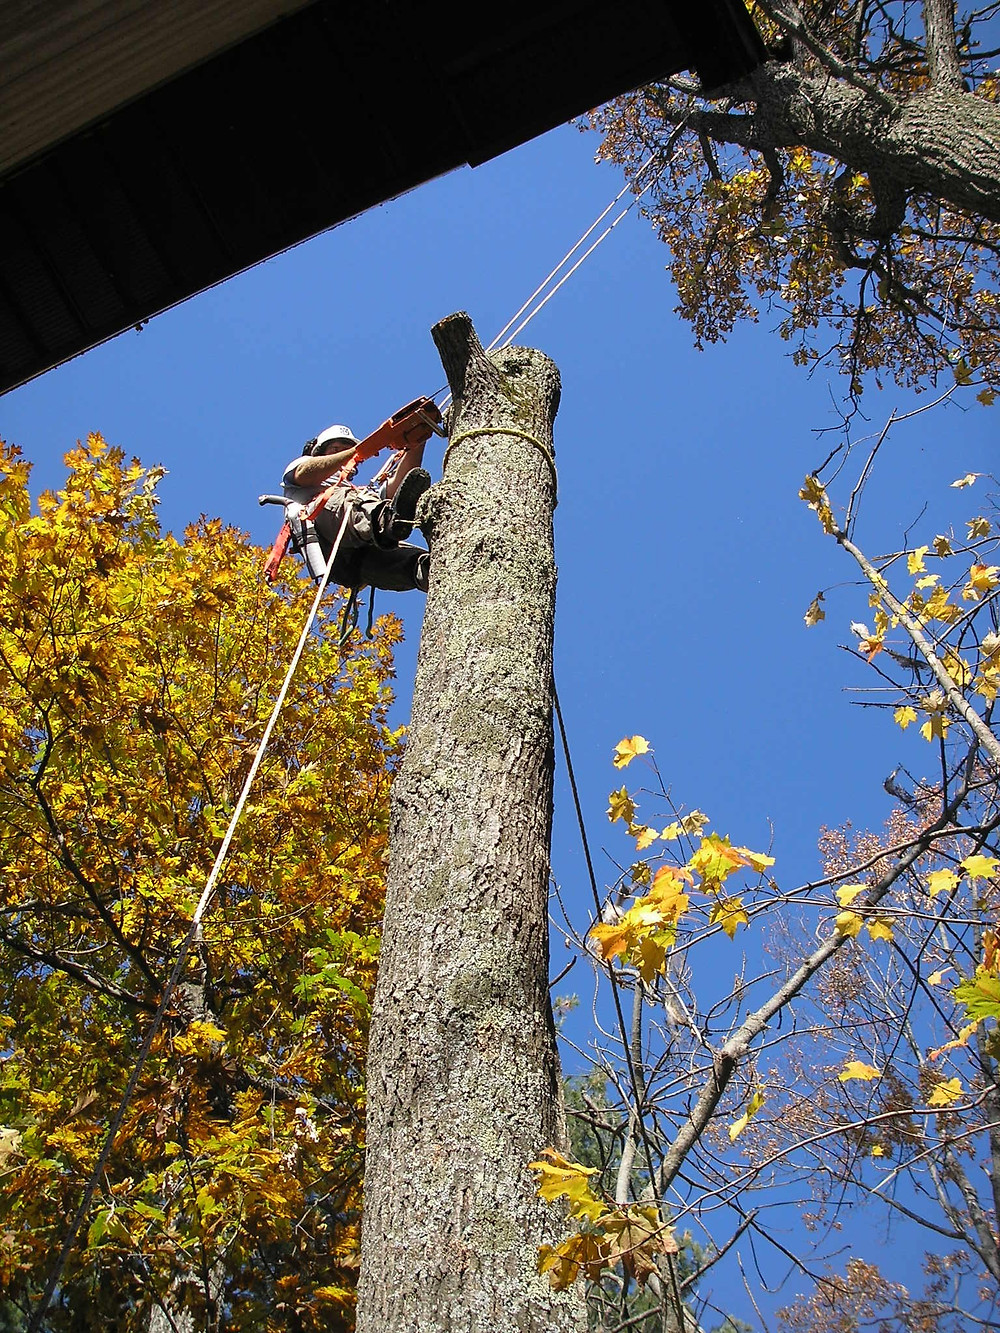 Large oak tree being removed in Wasaga Beach by DLG tree service climber / arborist.